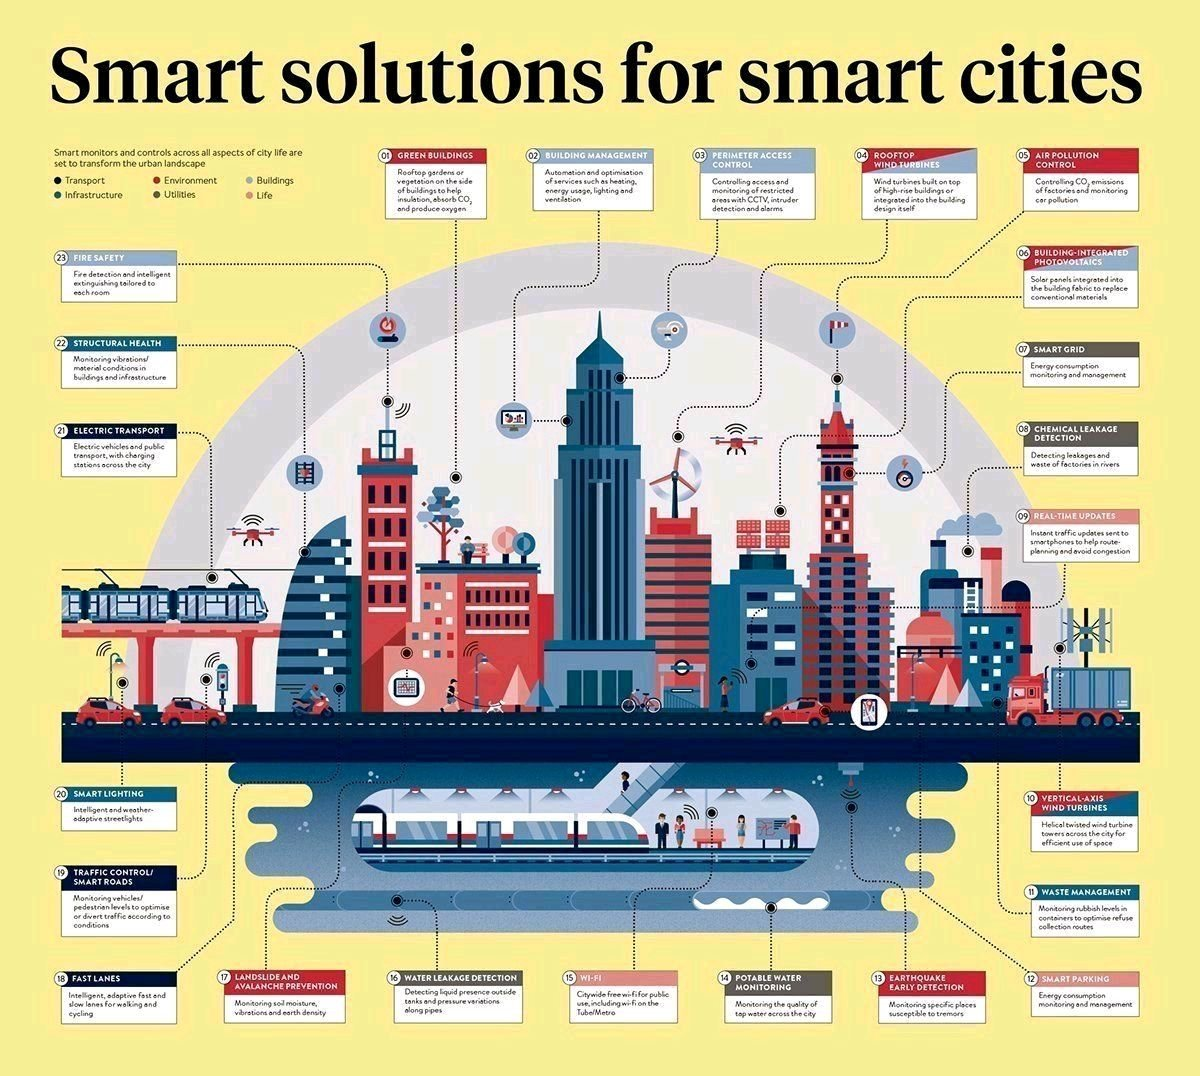 Smart Solutions for #SmartCities #infographic #IIoT #BigData #cybersecurity # #defstar5   #SmartCity #AI #fintech<br>http://pic.twitter.com/kBPy7poVOR